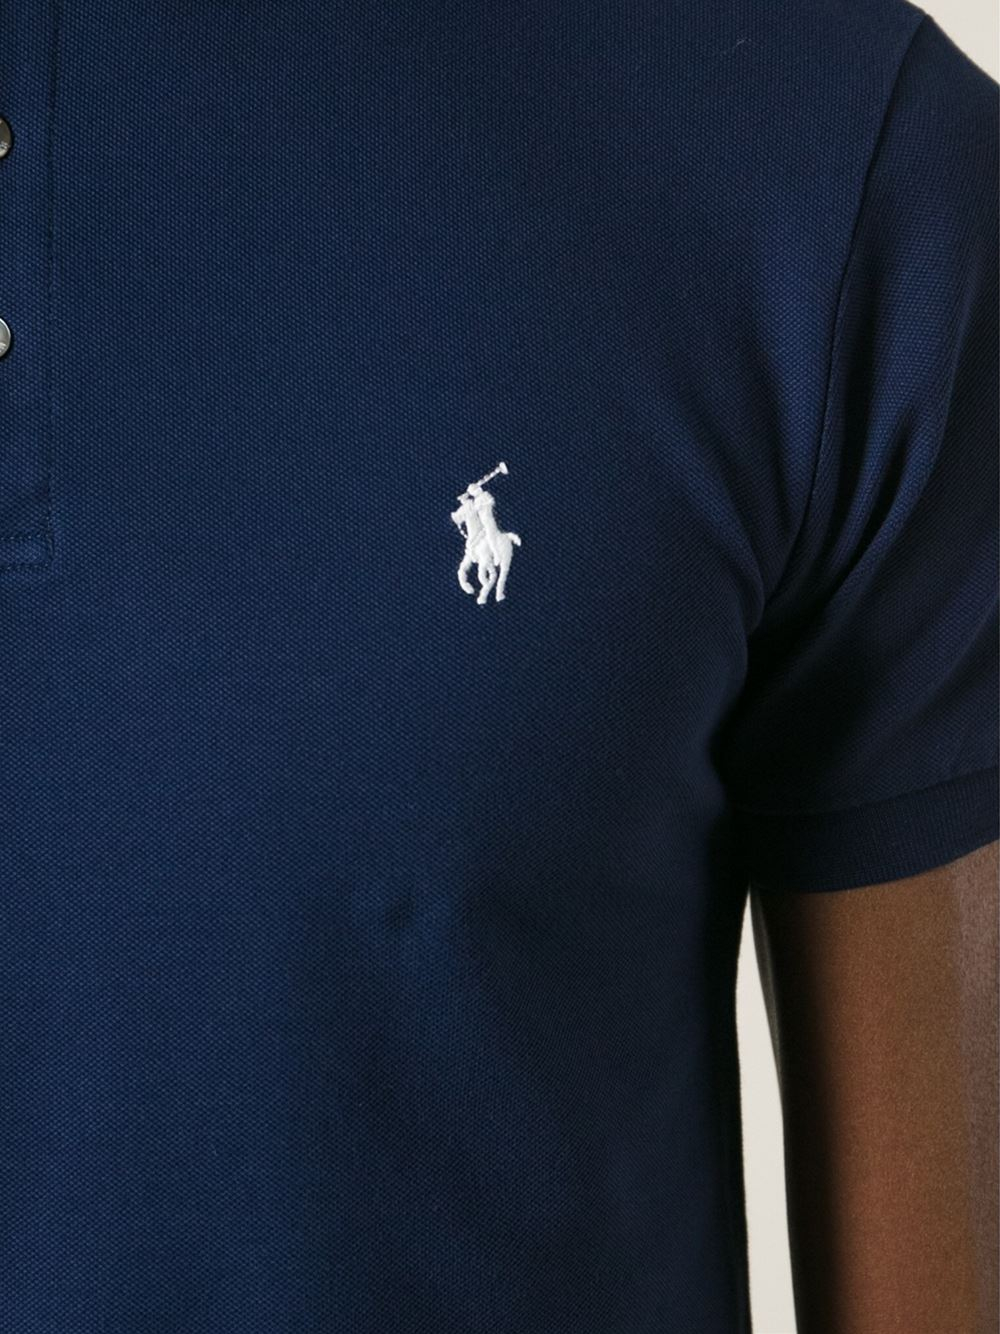 Lyst polo ralph lauren embroidered logo shirt in